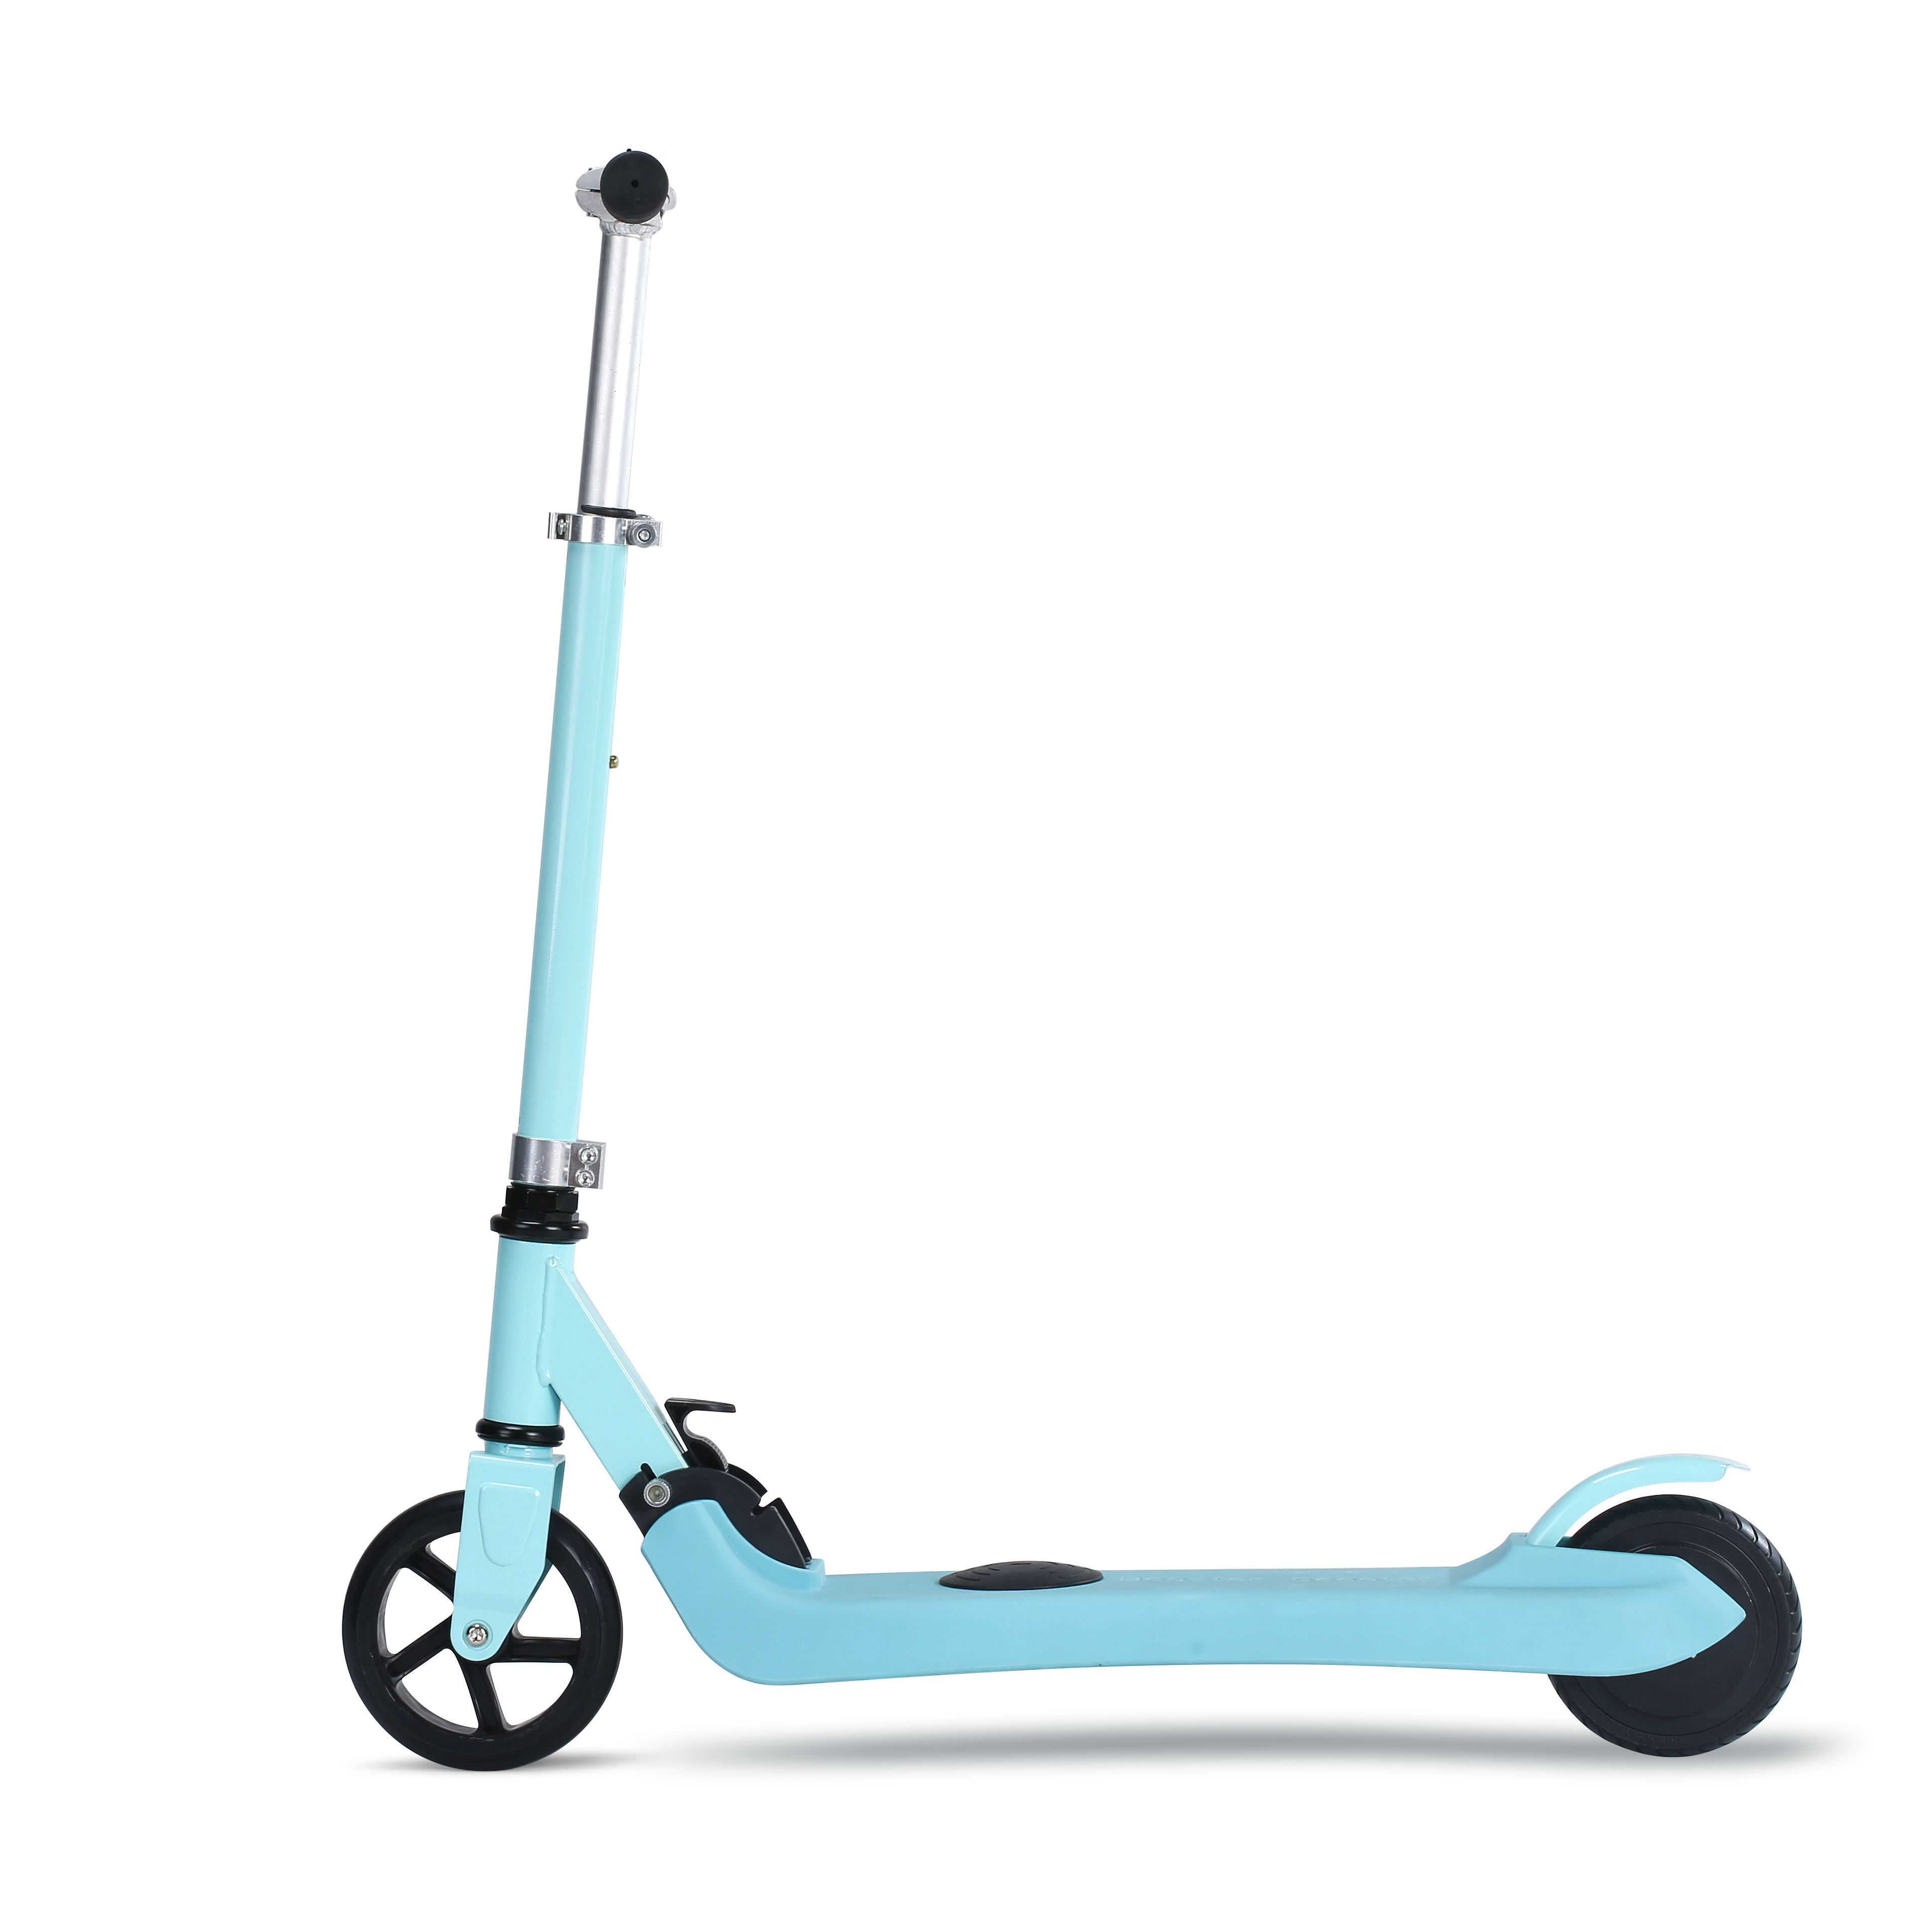 Two wheel folding kids kick start mini electric scooter for children